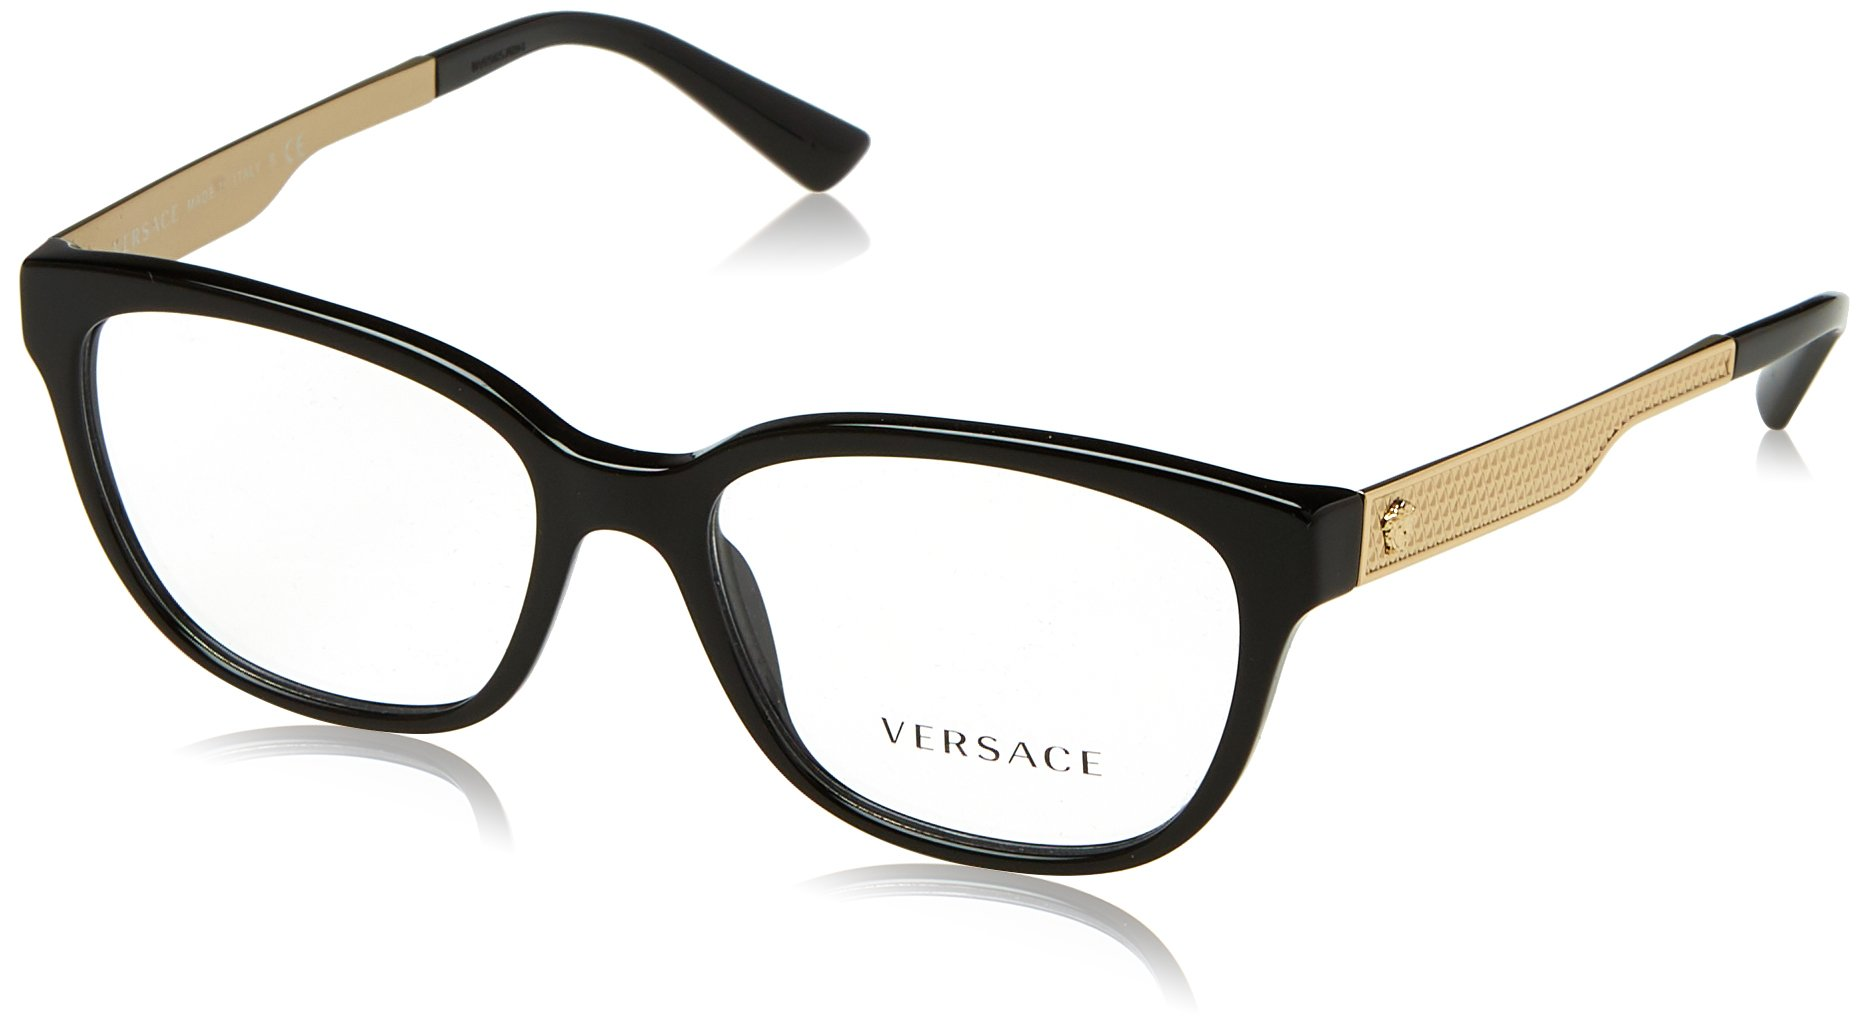 Versace Women's VE3240 Eyeglasses Black 52mm